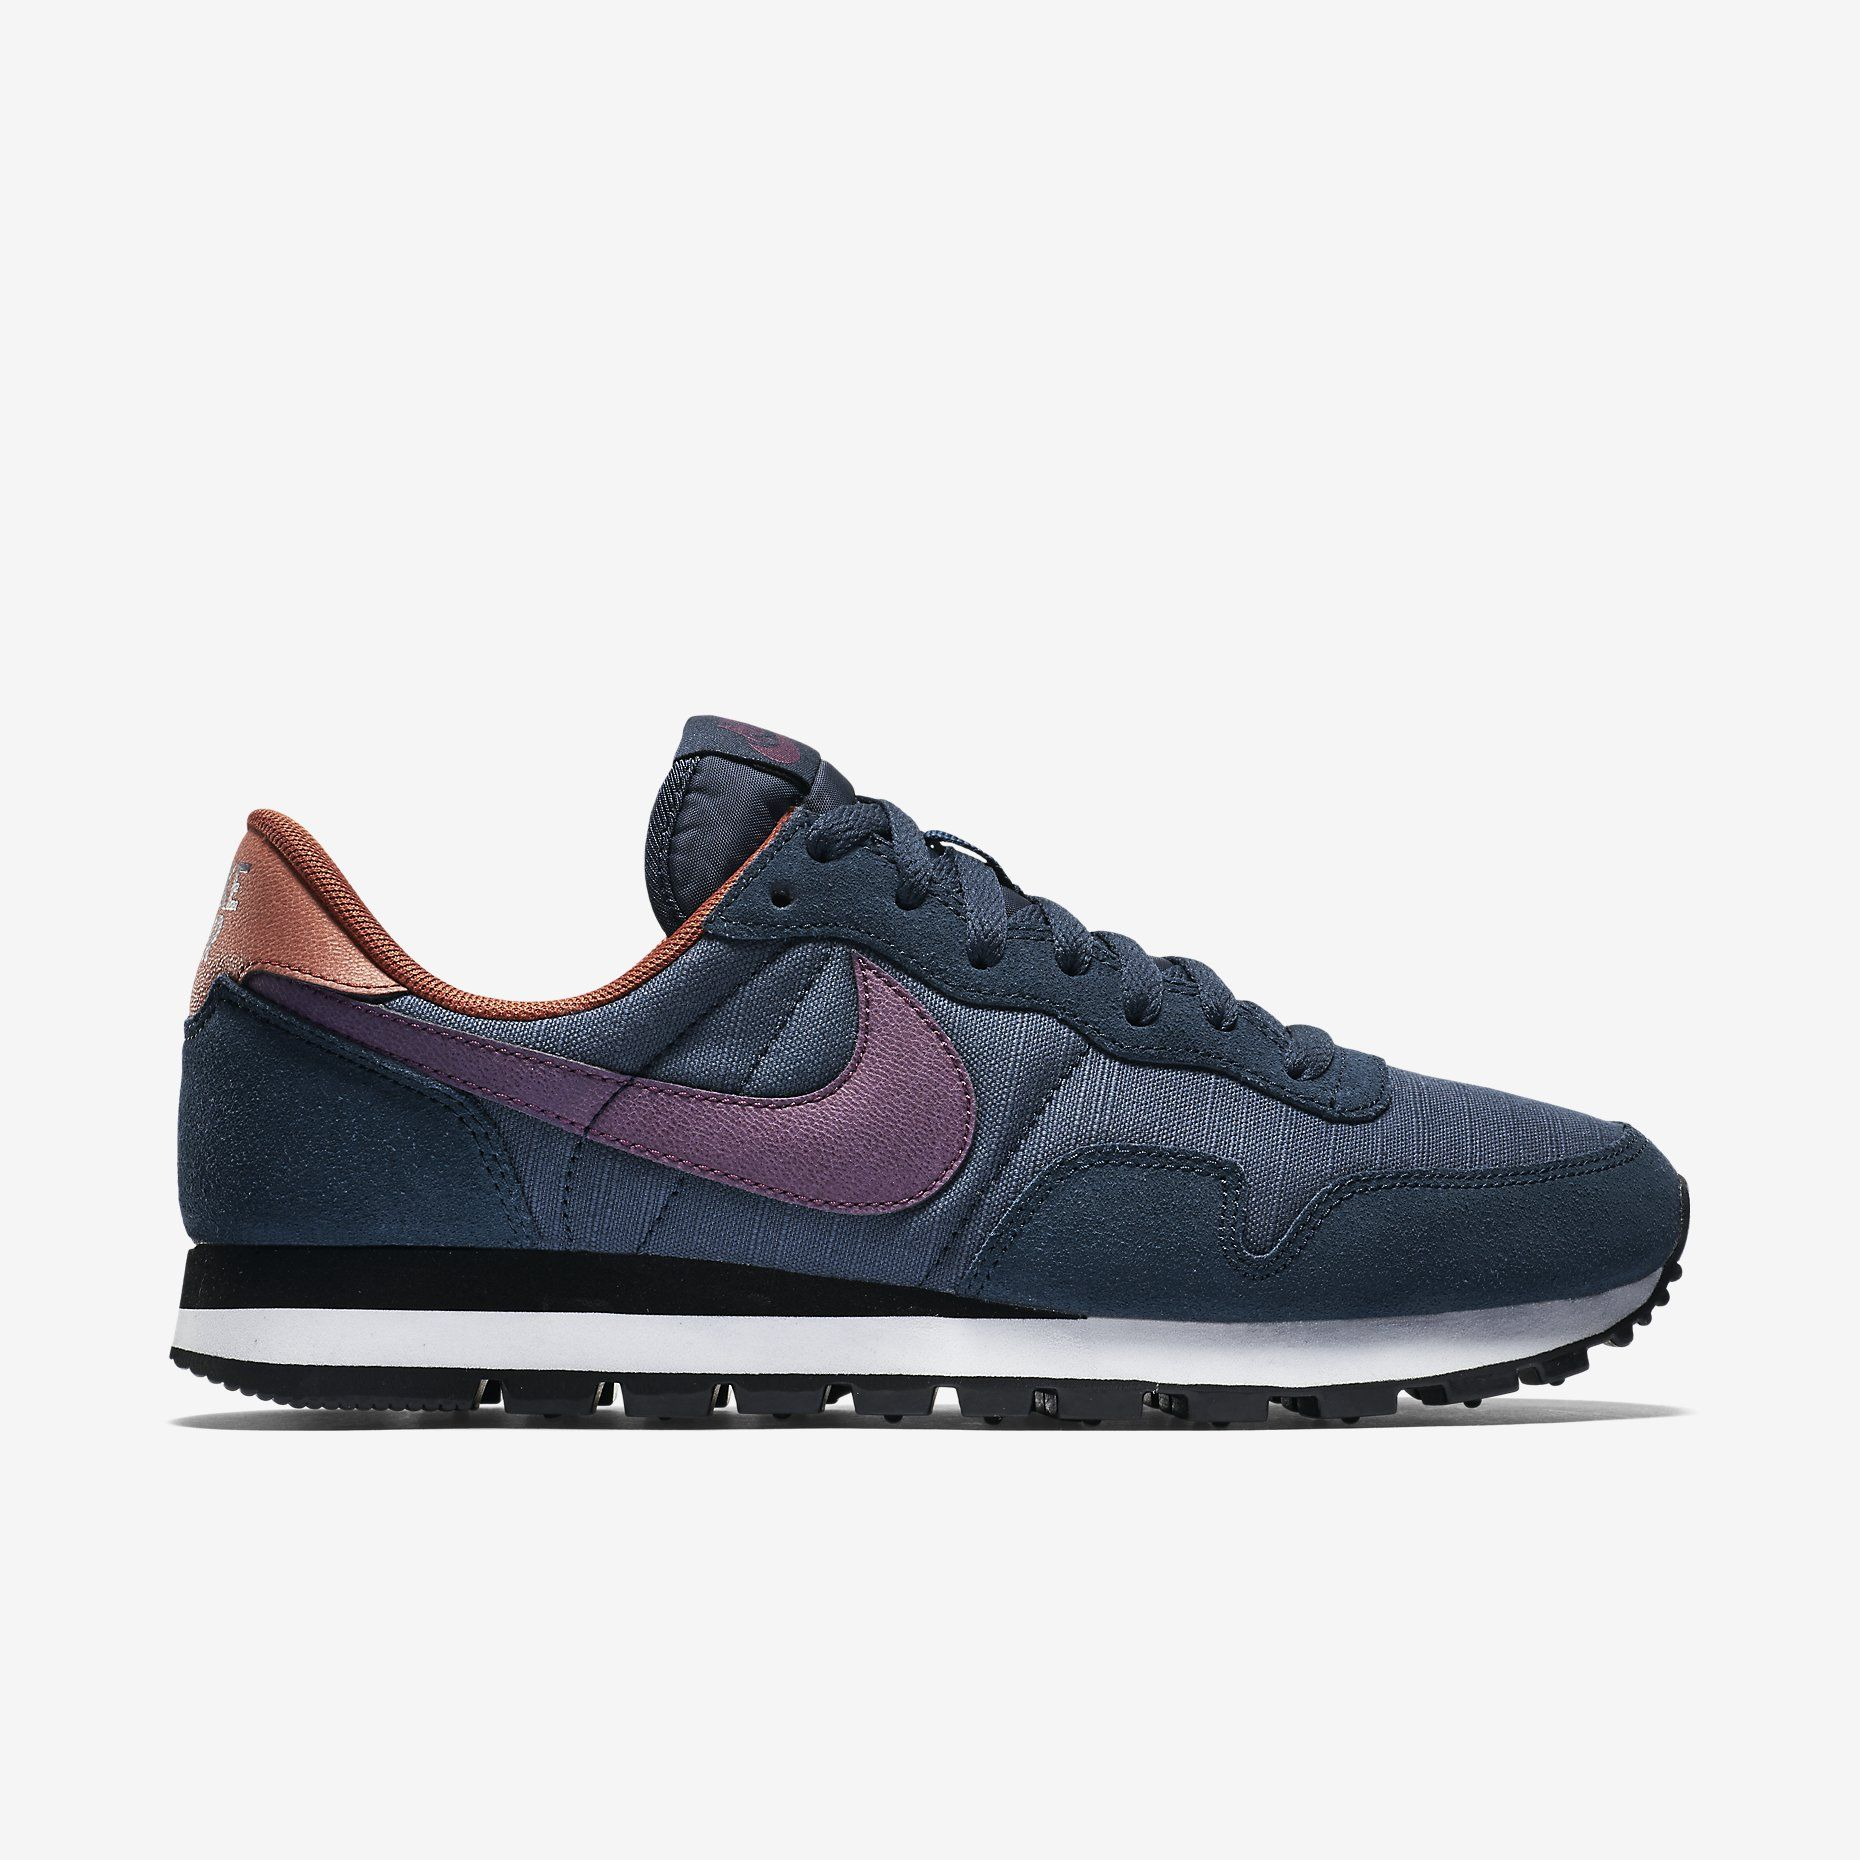 Outlet original product Nike Air Pegasus Grey 83 Trainers Online Store